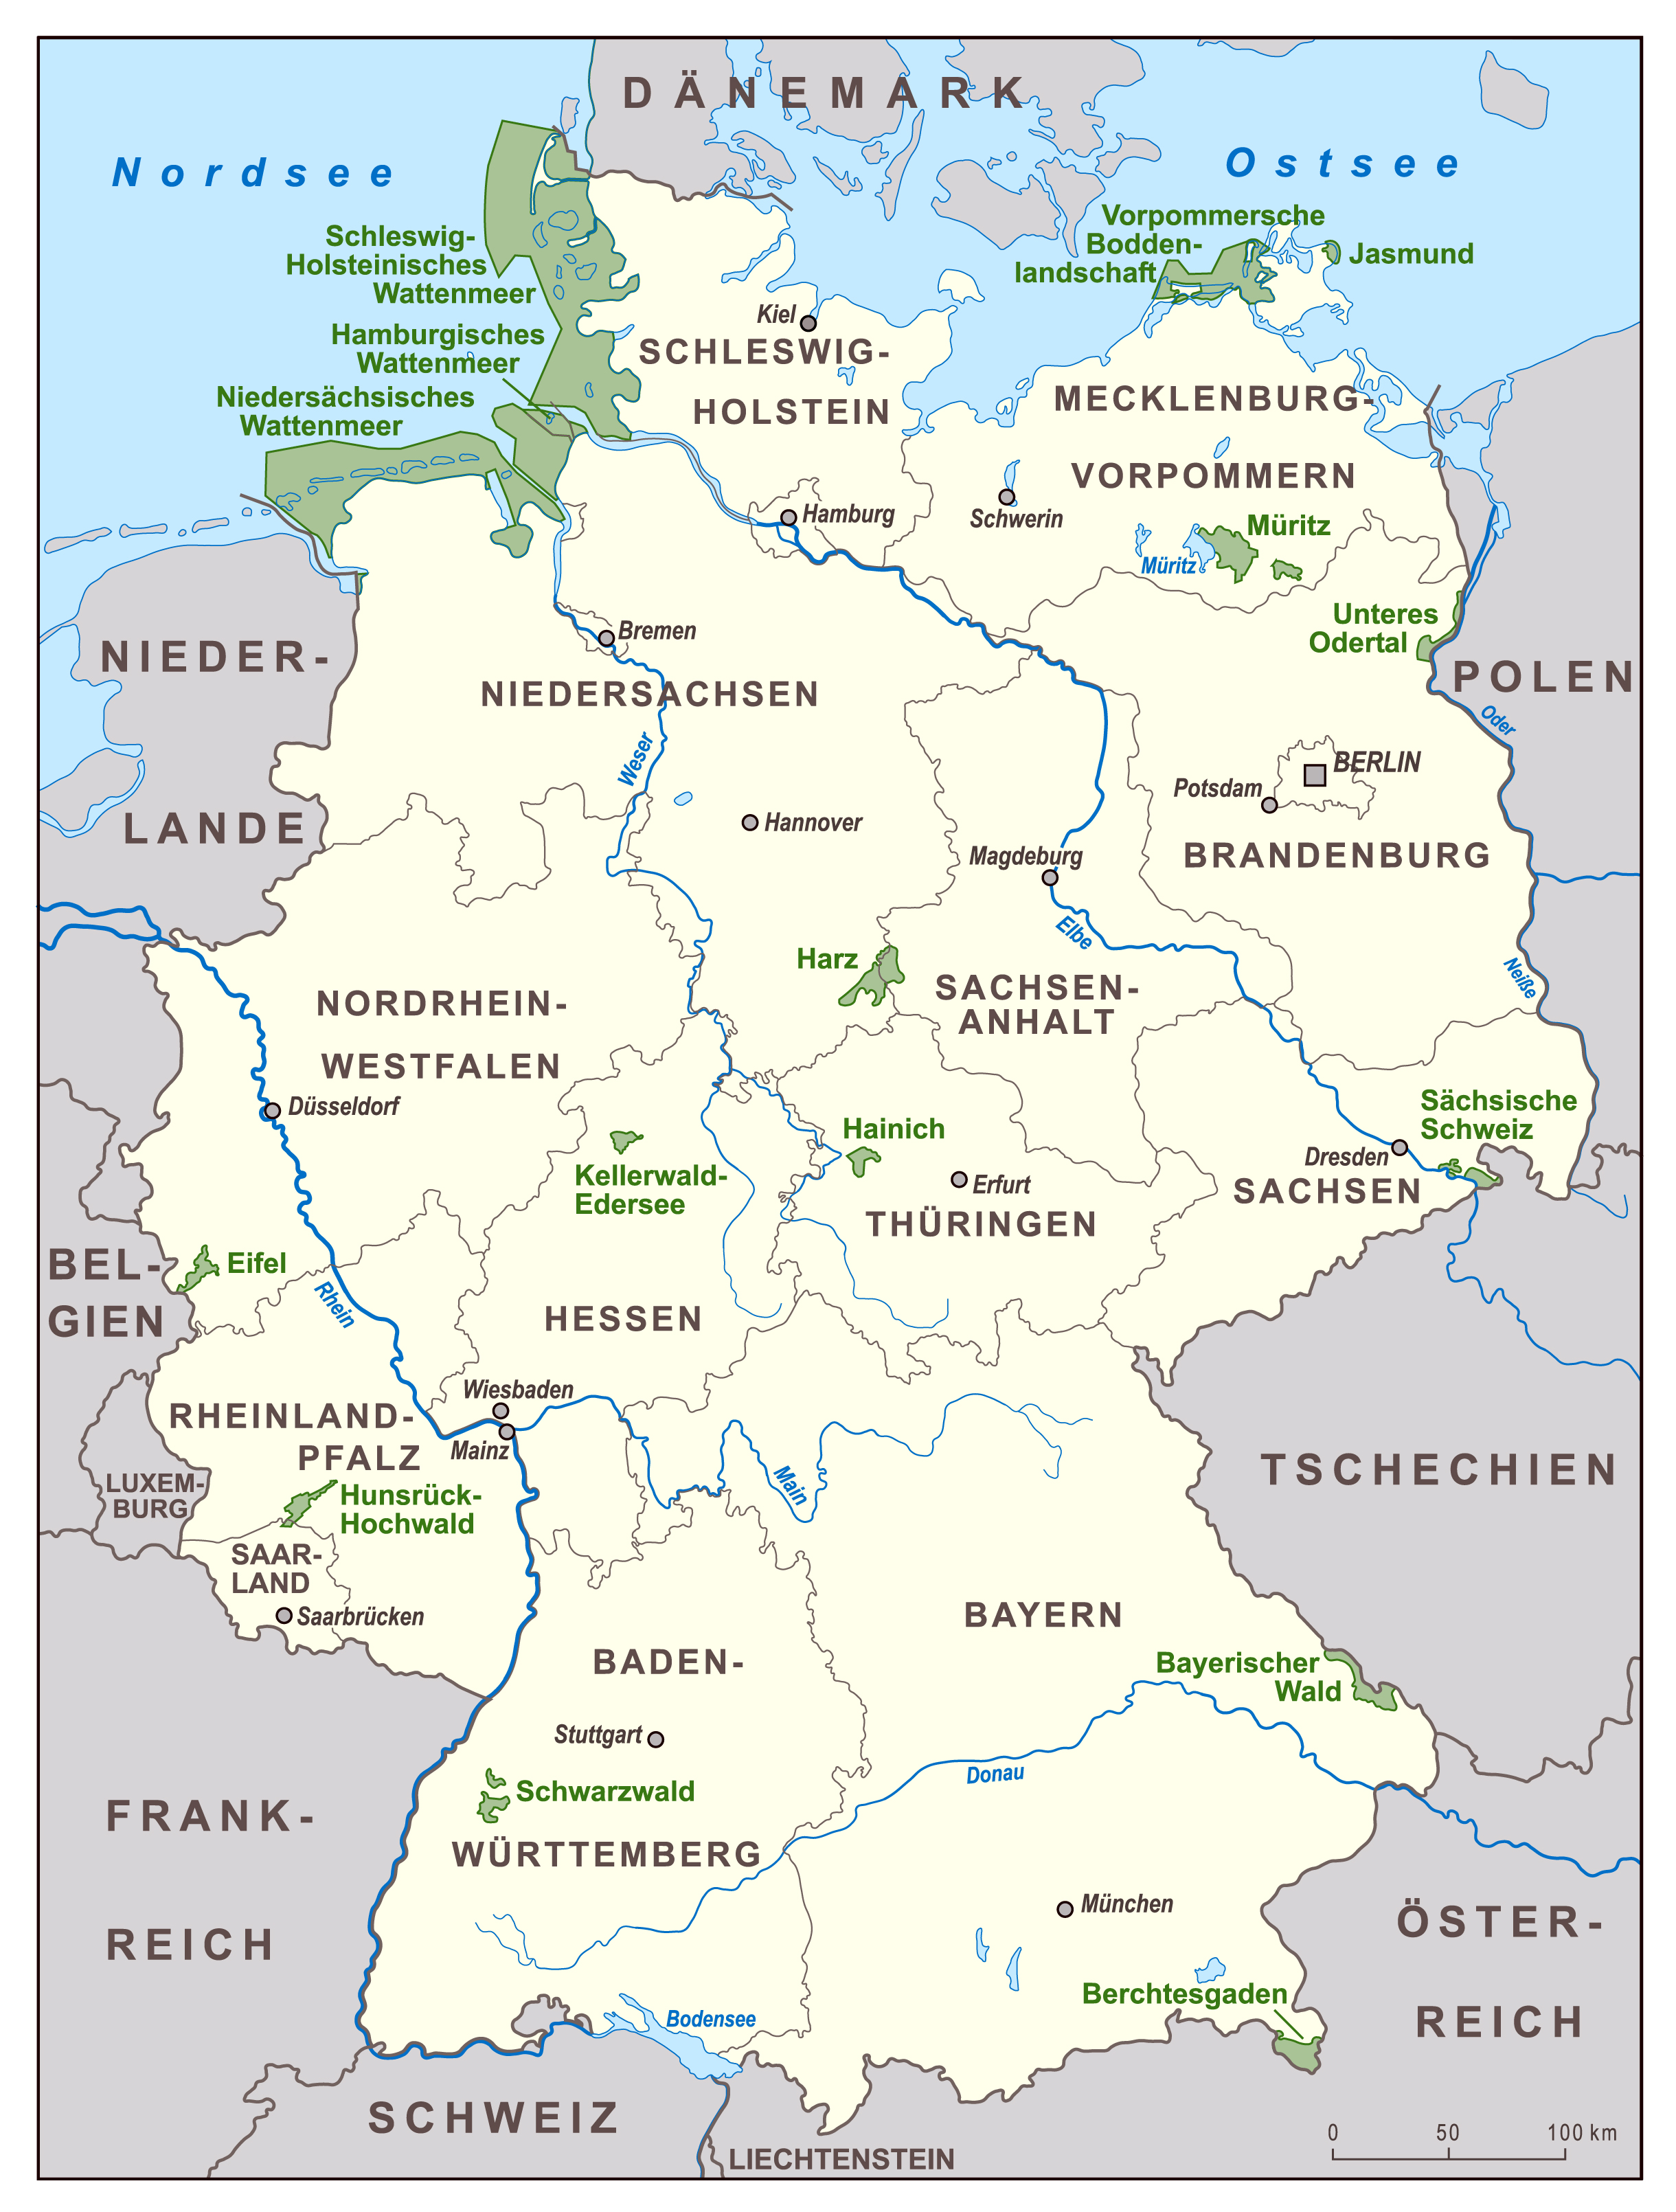 Large scale national parks map of Germany Germany Europe